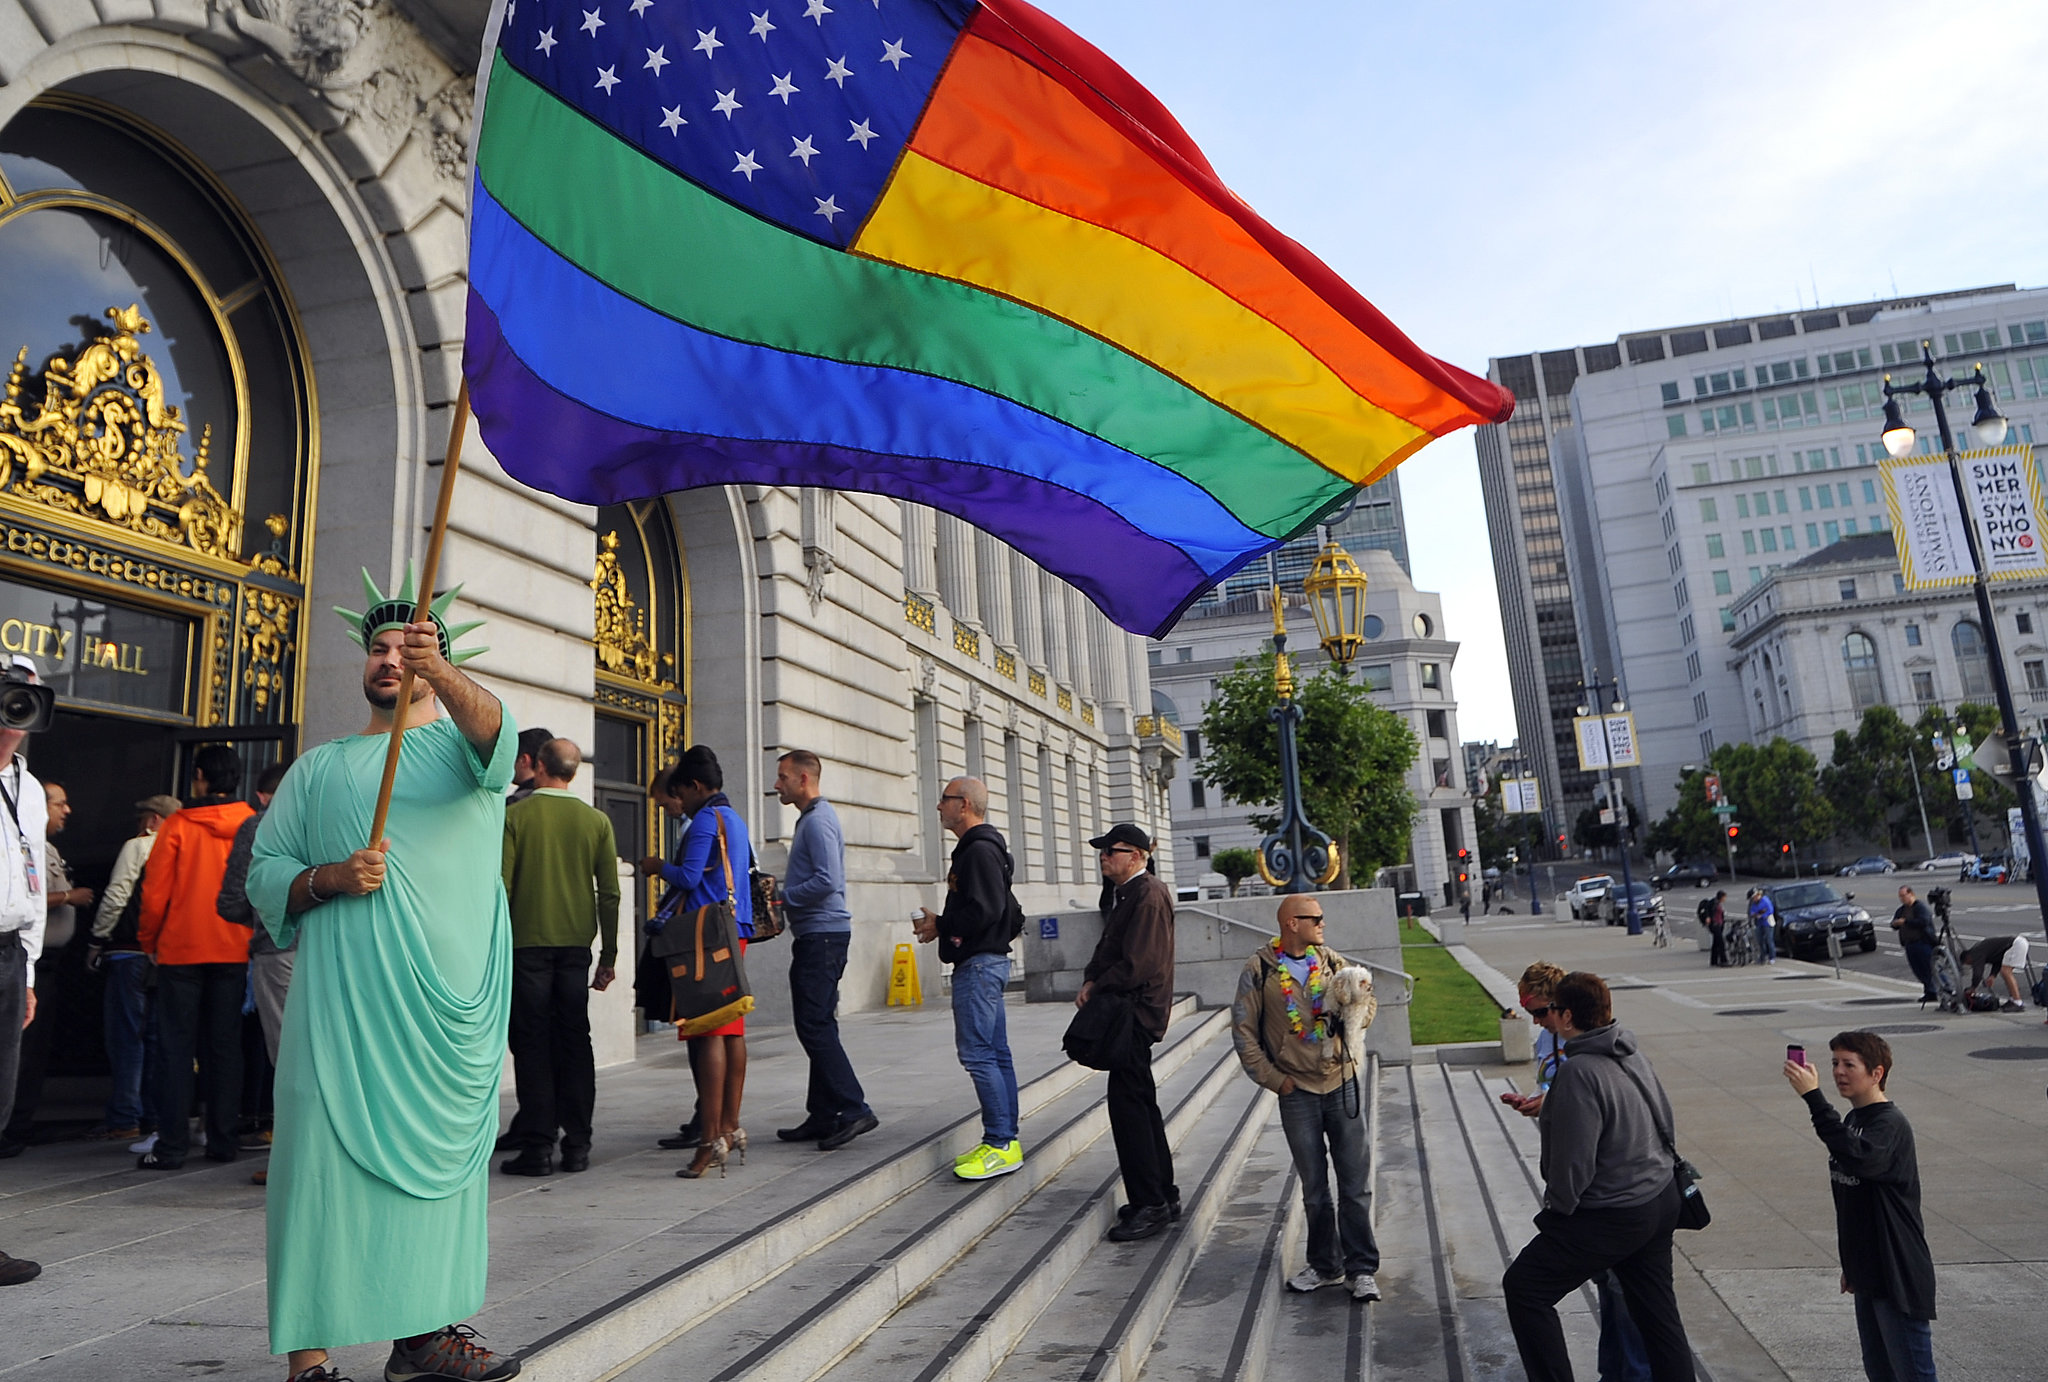 People lined up outside SF City Hall on Wednesday.